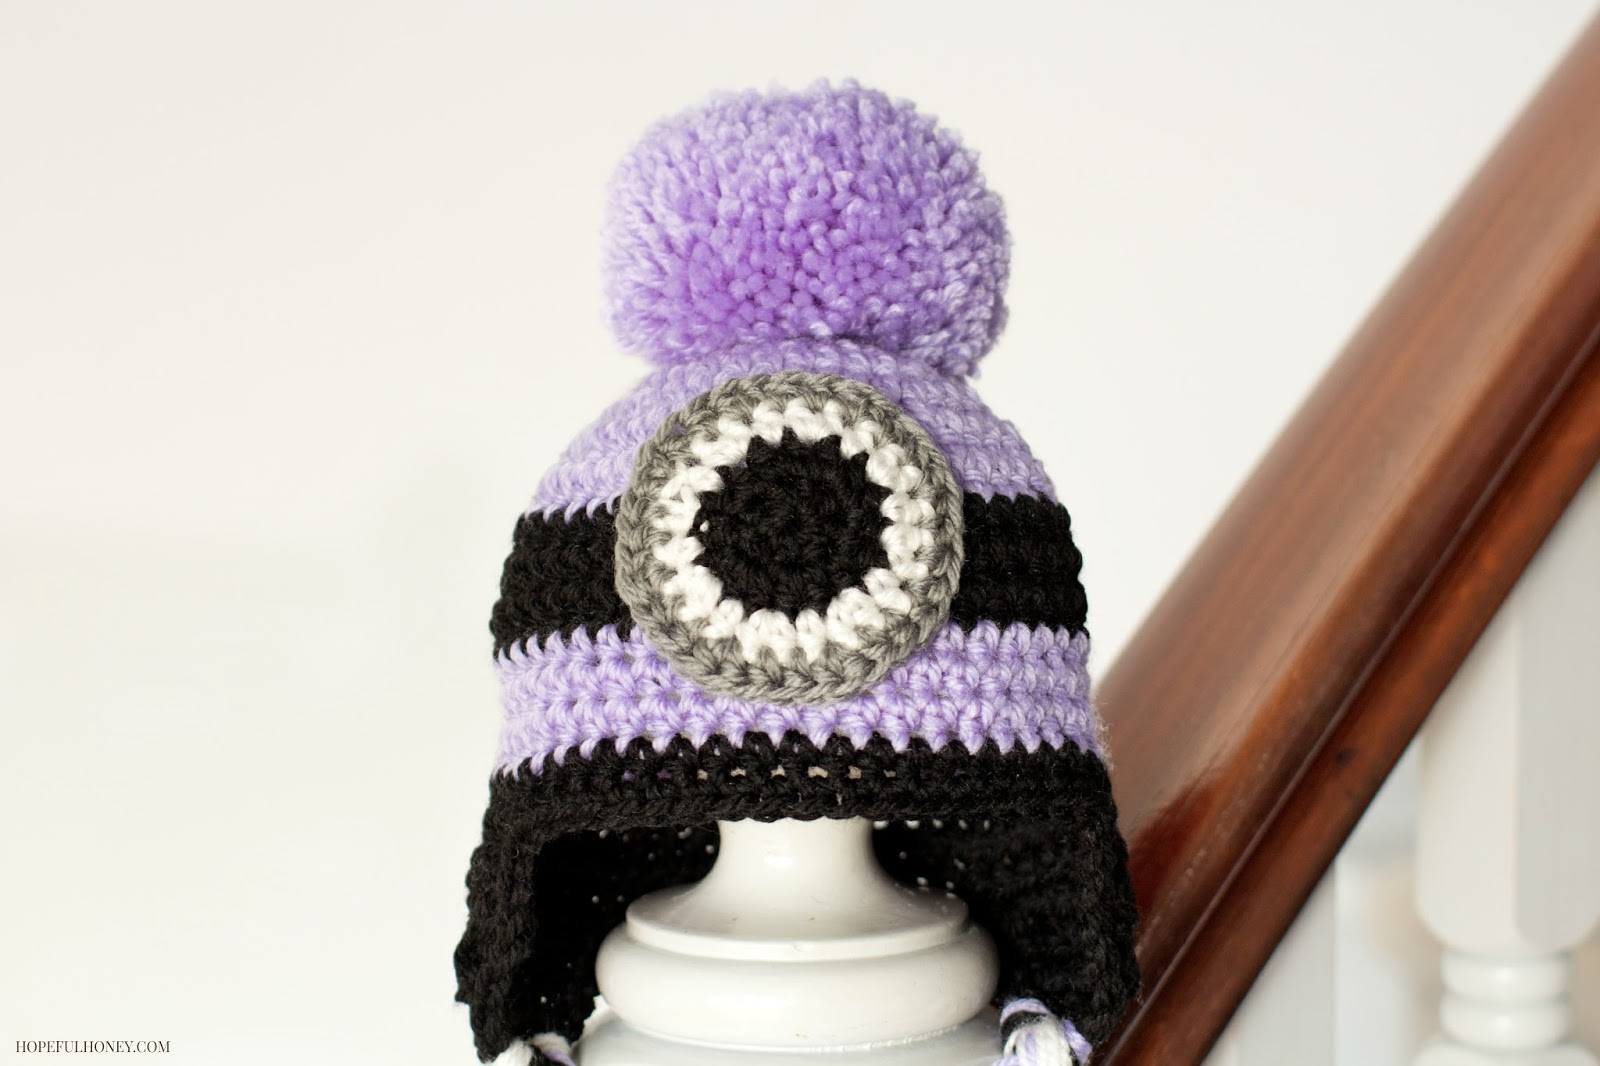 Crochet Hat Pattern Minion : Hopeful Honey Craft, Crochet, Create: Evil Minion ...